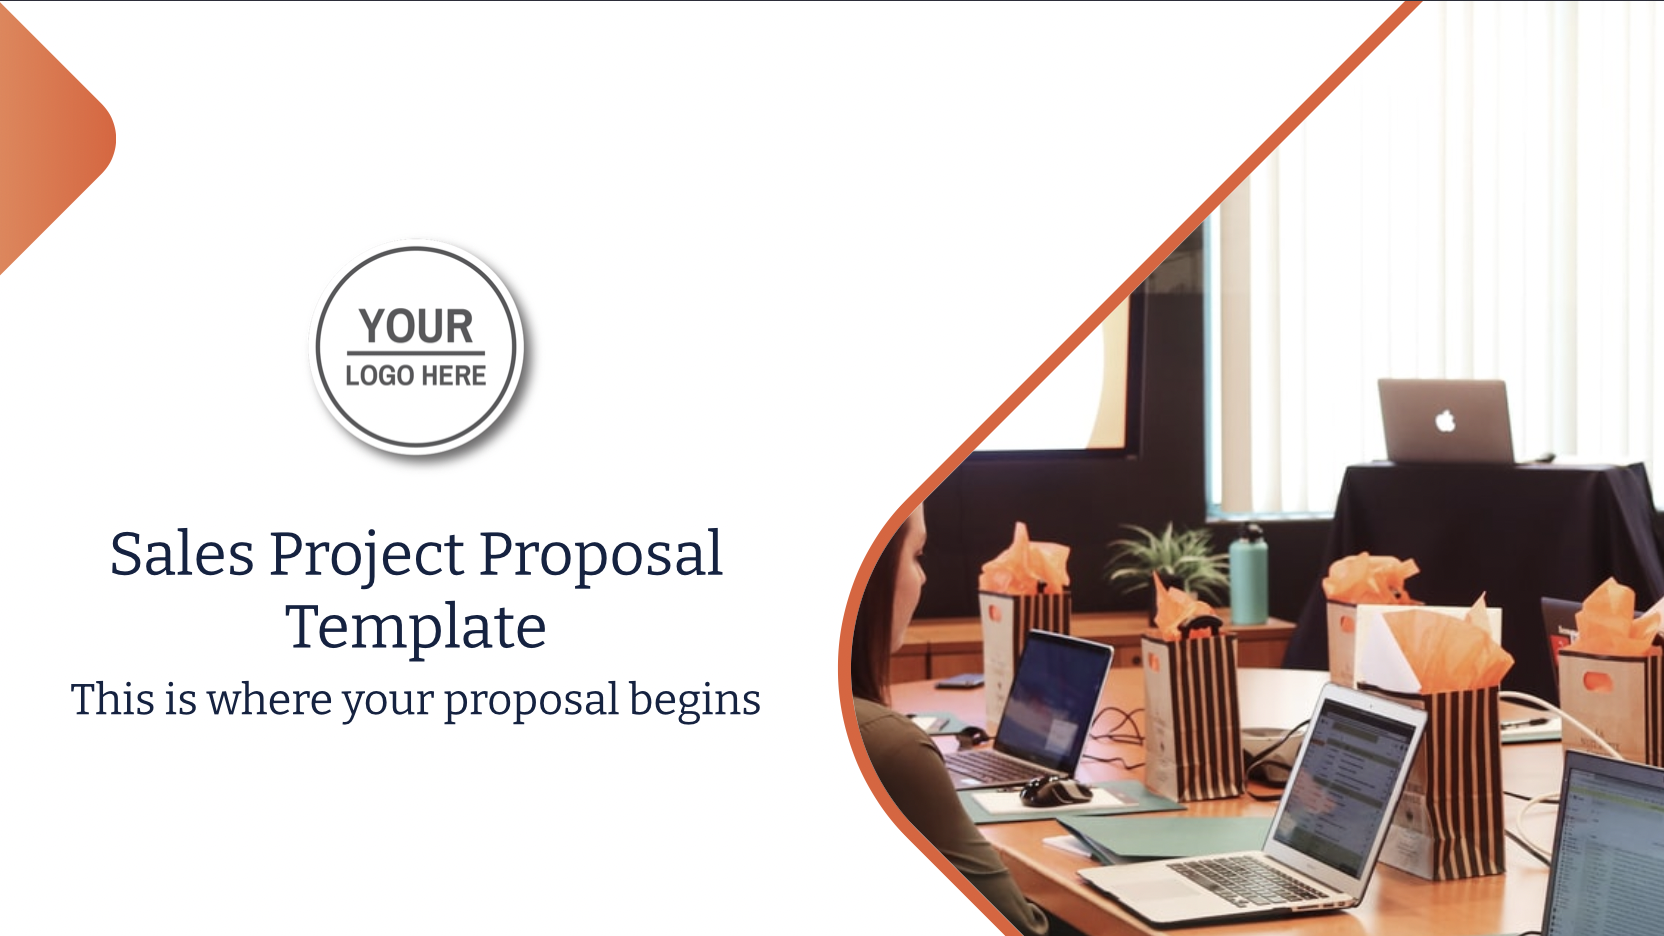 Use this sales project proposal for your next sales follow up to close the sales more quickly than you do. How? By using Decktopus engagement features! Swipe to learn more.